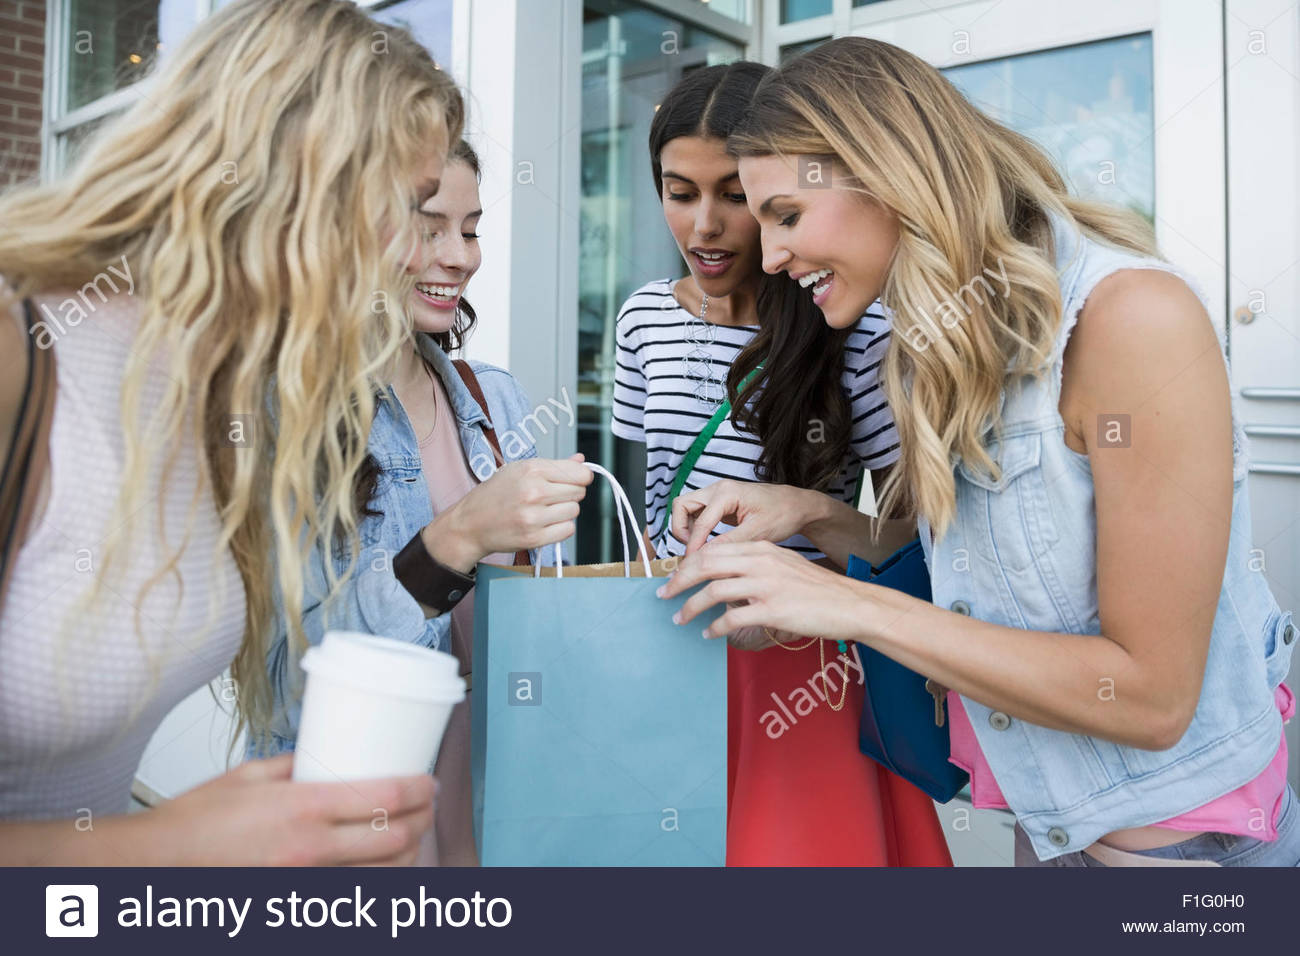 Women looking inside shopping bags at storefront - Stock Image